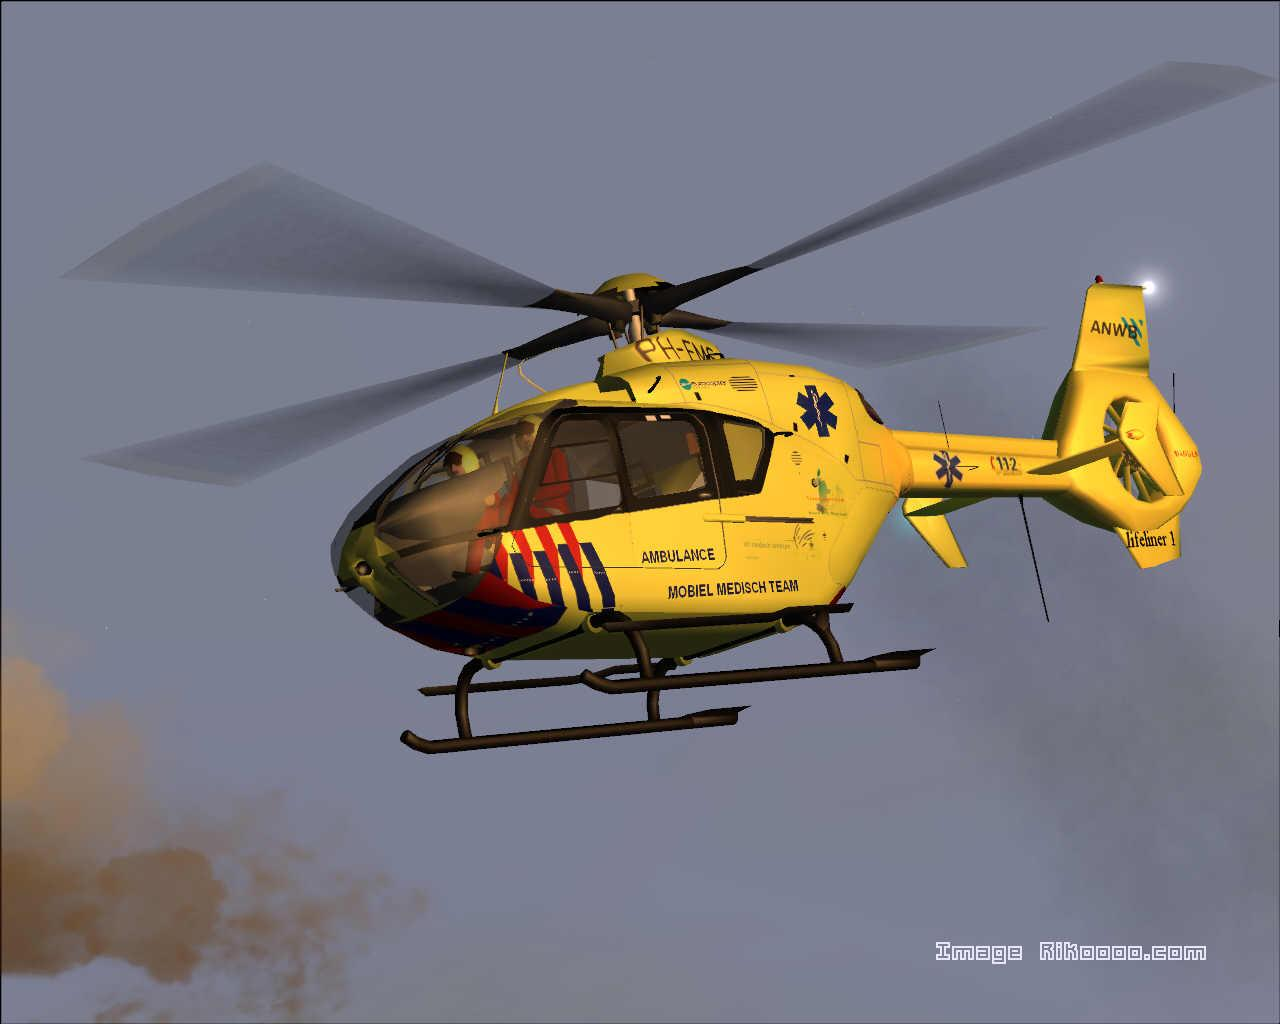 x plane ec135 download with 36 on Arch Linux likewise Index besides Ec 135 Fur X Plane furthermore LfzhoEXtgPc furthermore 36.